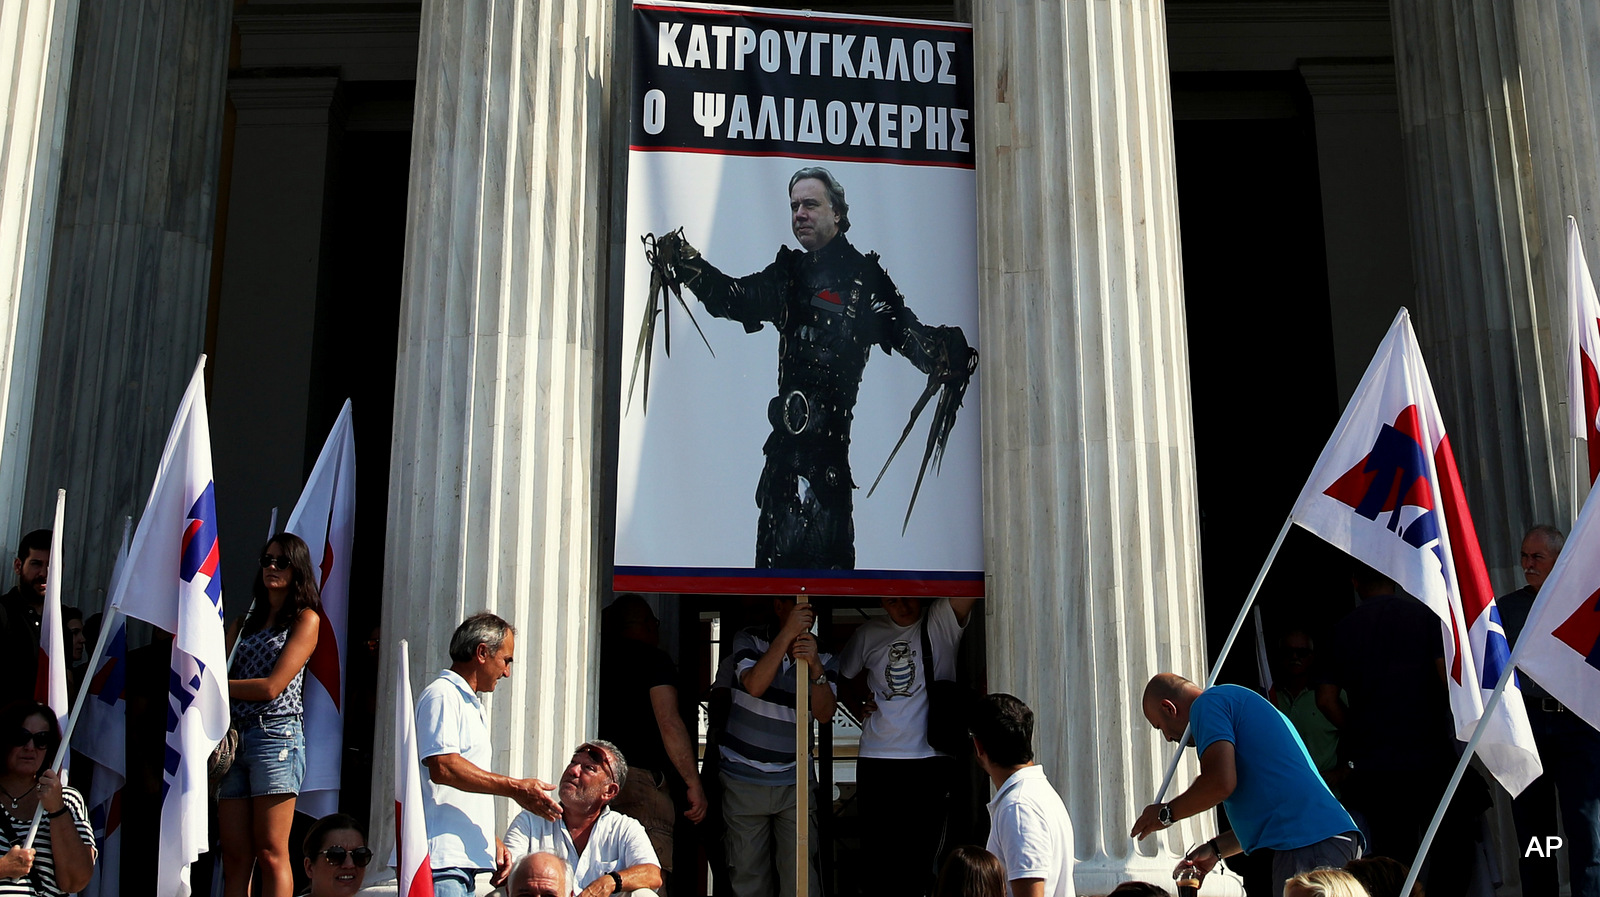 "Protesters against new austerity measures hold a placard depicting Labour Minister George Katrougalos as the movie character Edward Scissorhands during a protest outside Zappeion Hall in Athens, Friday, Sept. 16, 2016. The placard reads in Greek""Katrougalos Scissorhands""."